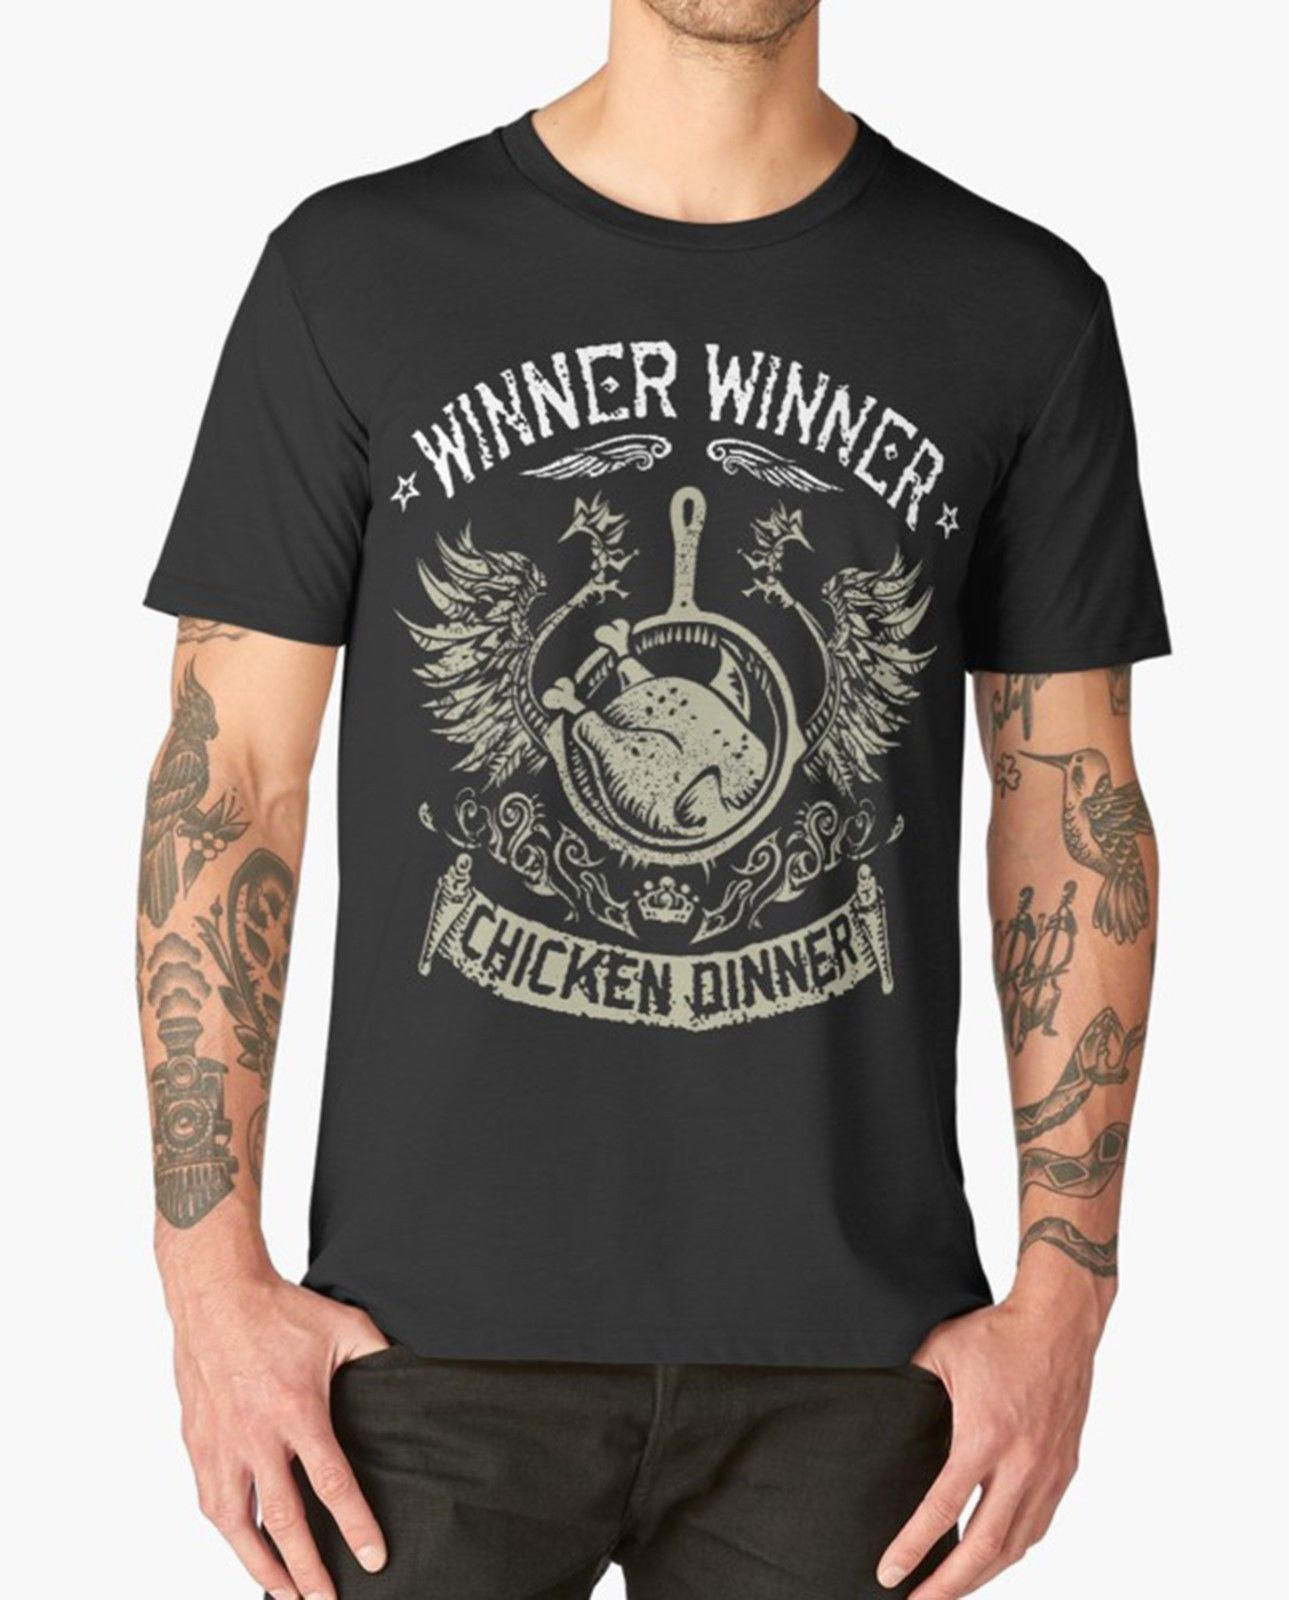 WINNER WINNER CHICKEN DINNER T SHIRT YES WE PAN GAMER GAME PS4 XBOX PUBG New T Shirts Funny Tops Tee New Unisex Funny Tops